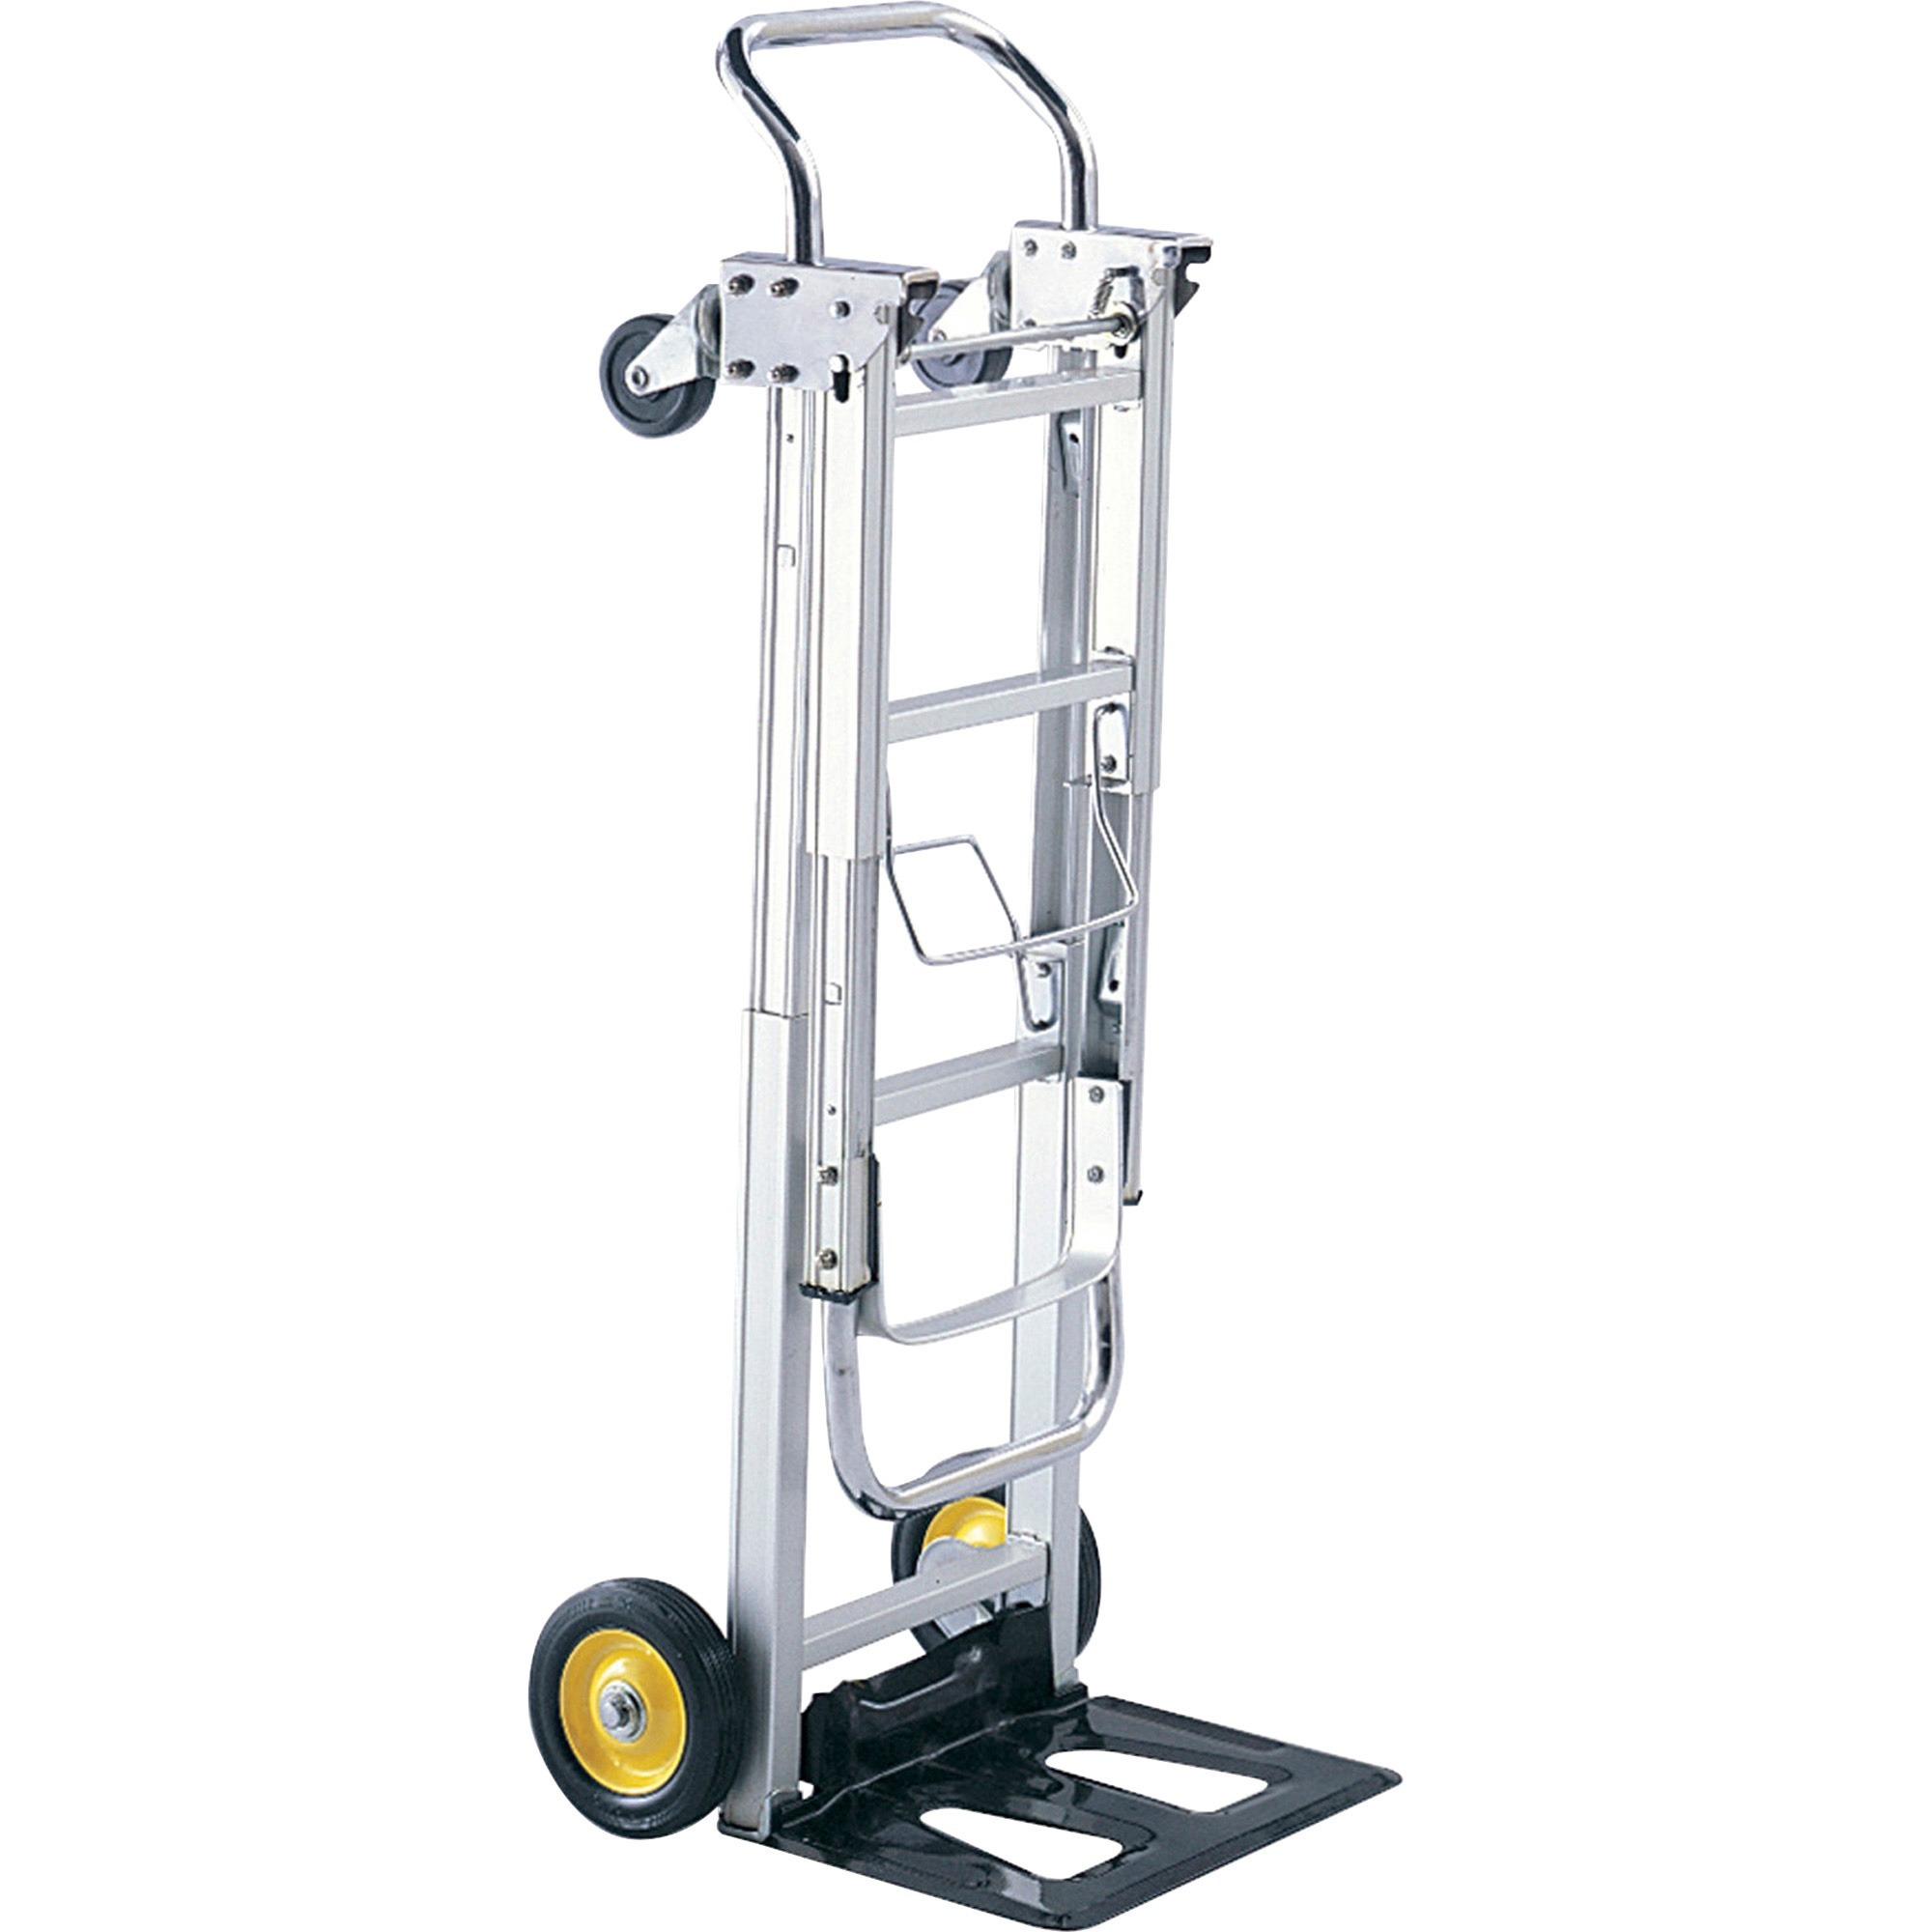 Safco, SAF4050, HideAway Convertible Hand Truck, 1 Each, Silver